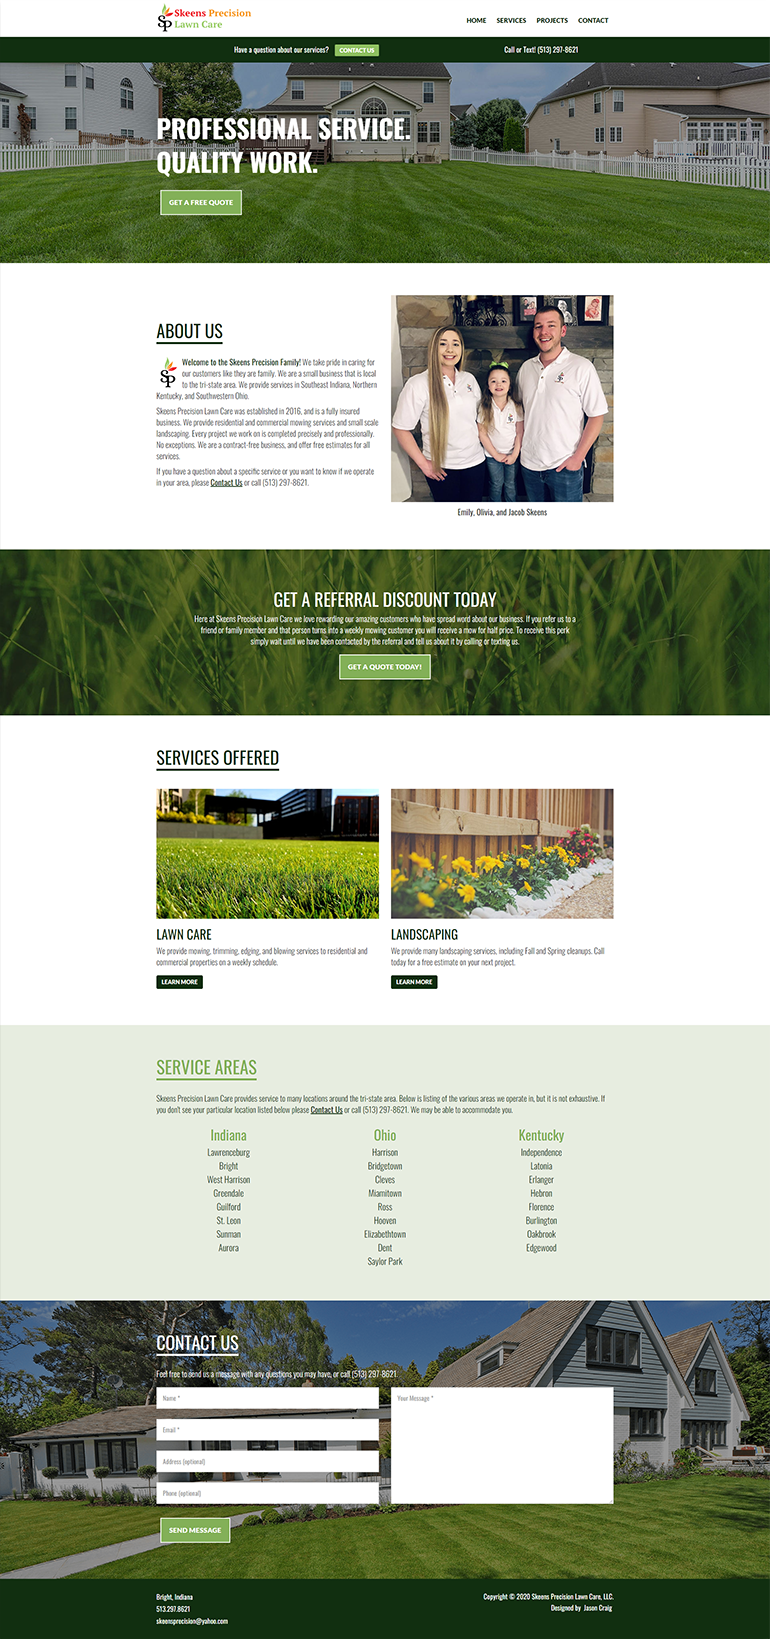 Skeens Precision Lawn Care website homepage layout.